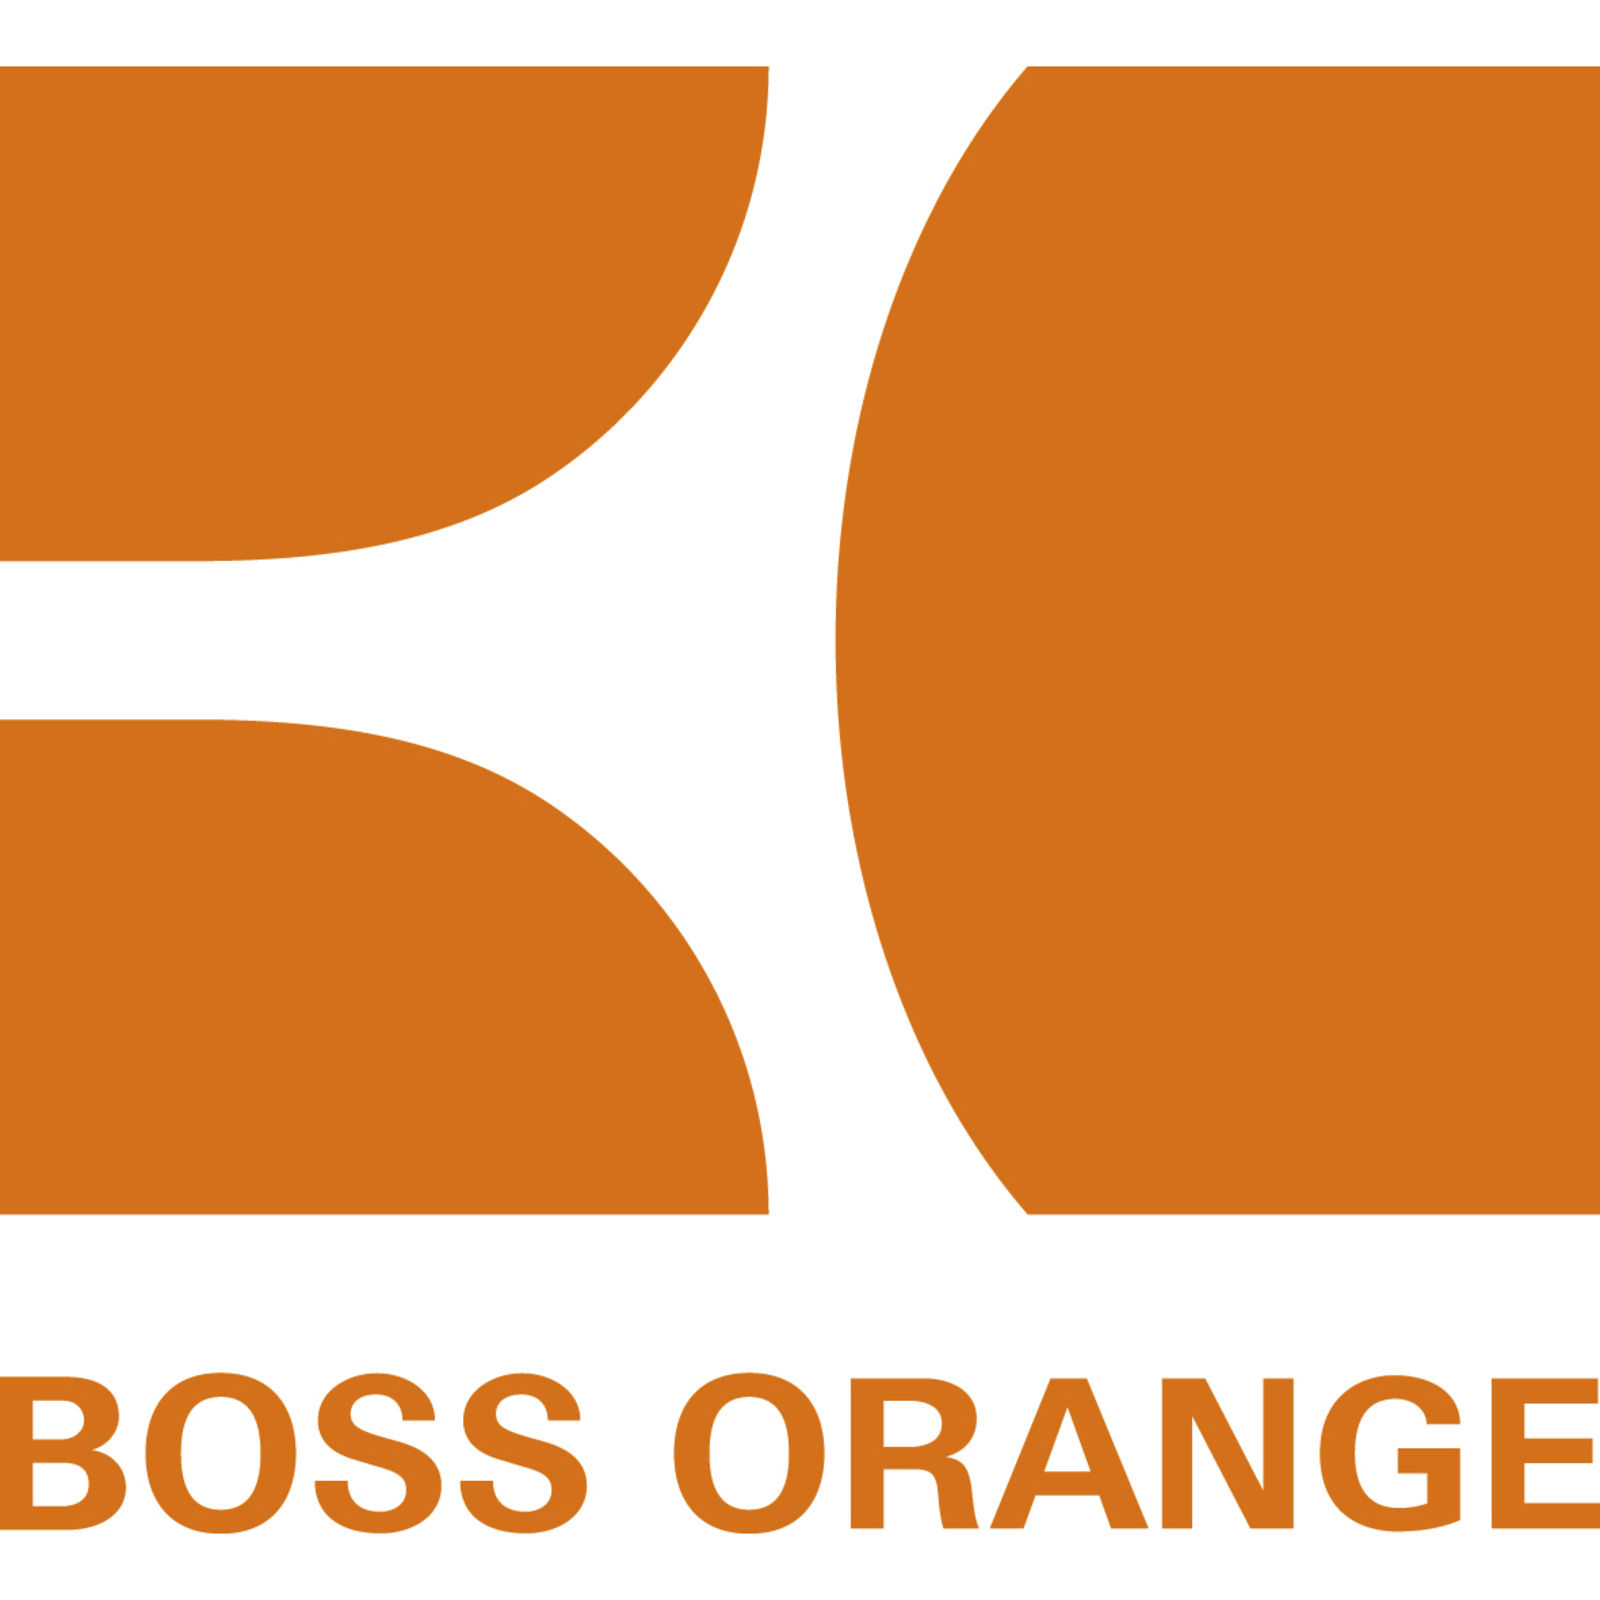 BOSS ORANGE (Bild 1)